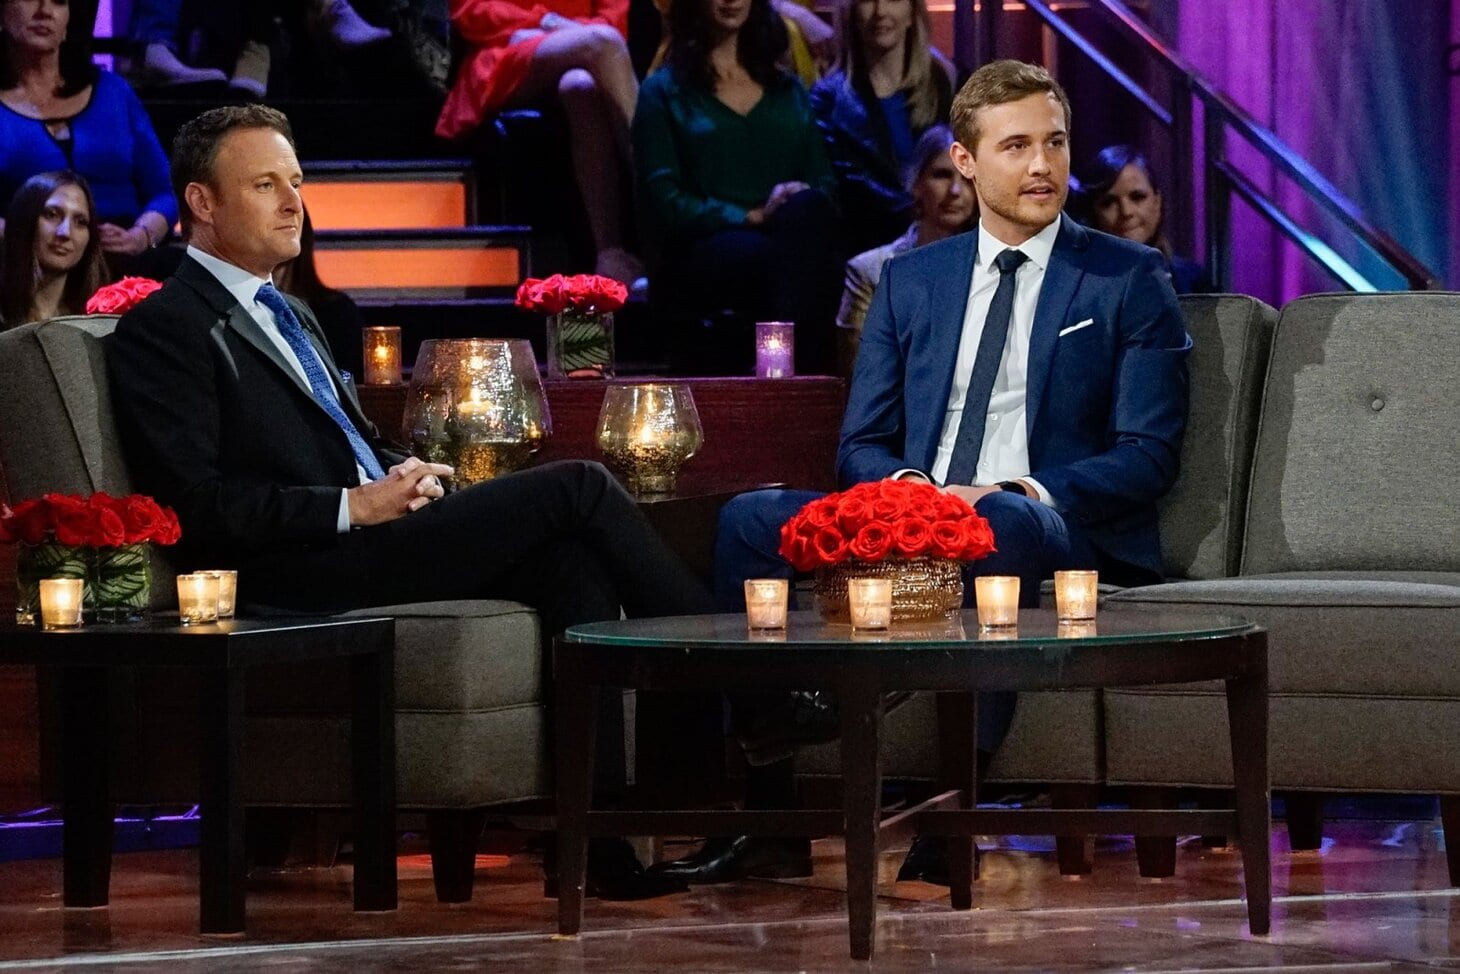 Jillian Harri Bachelor Recap